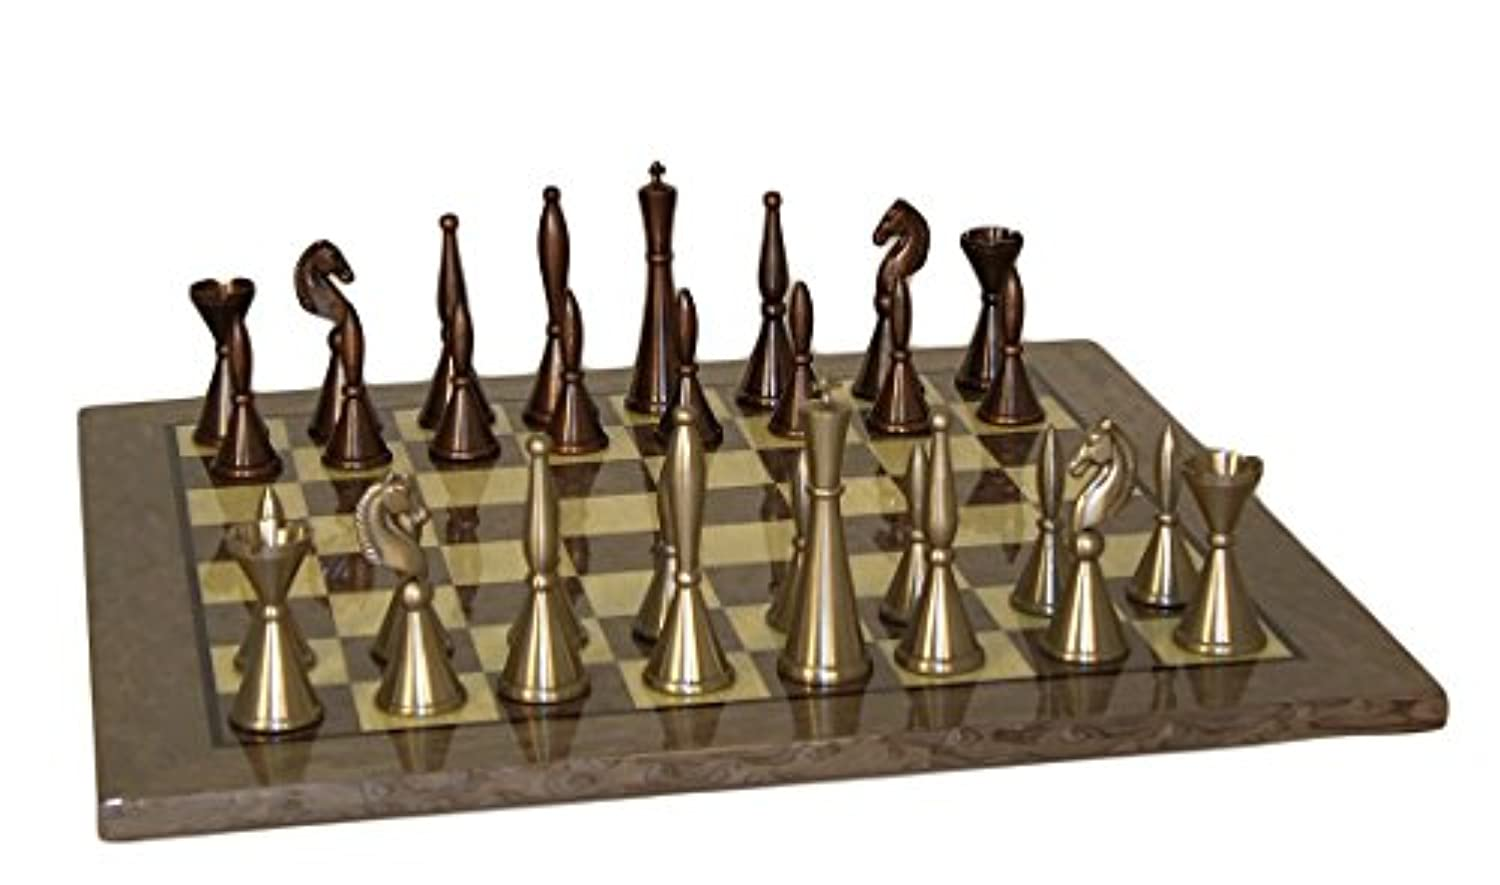 Solid Brass Art Deco Chess Set